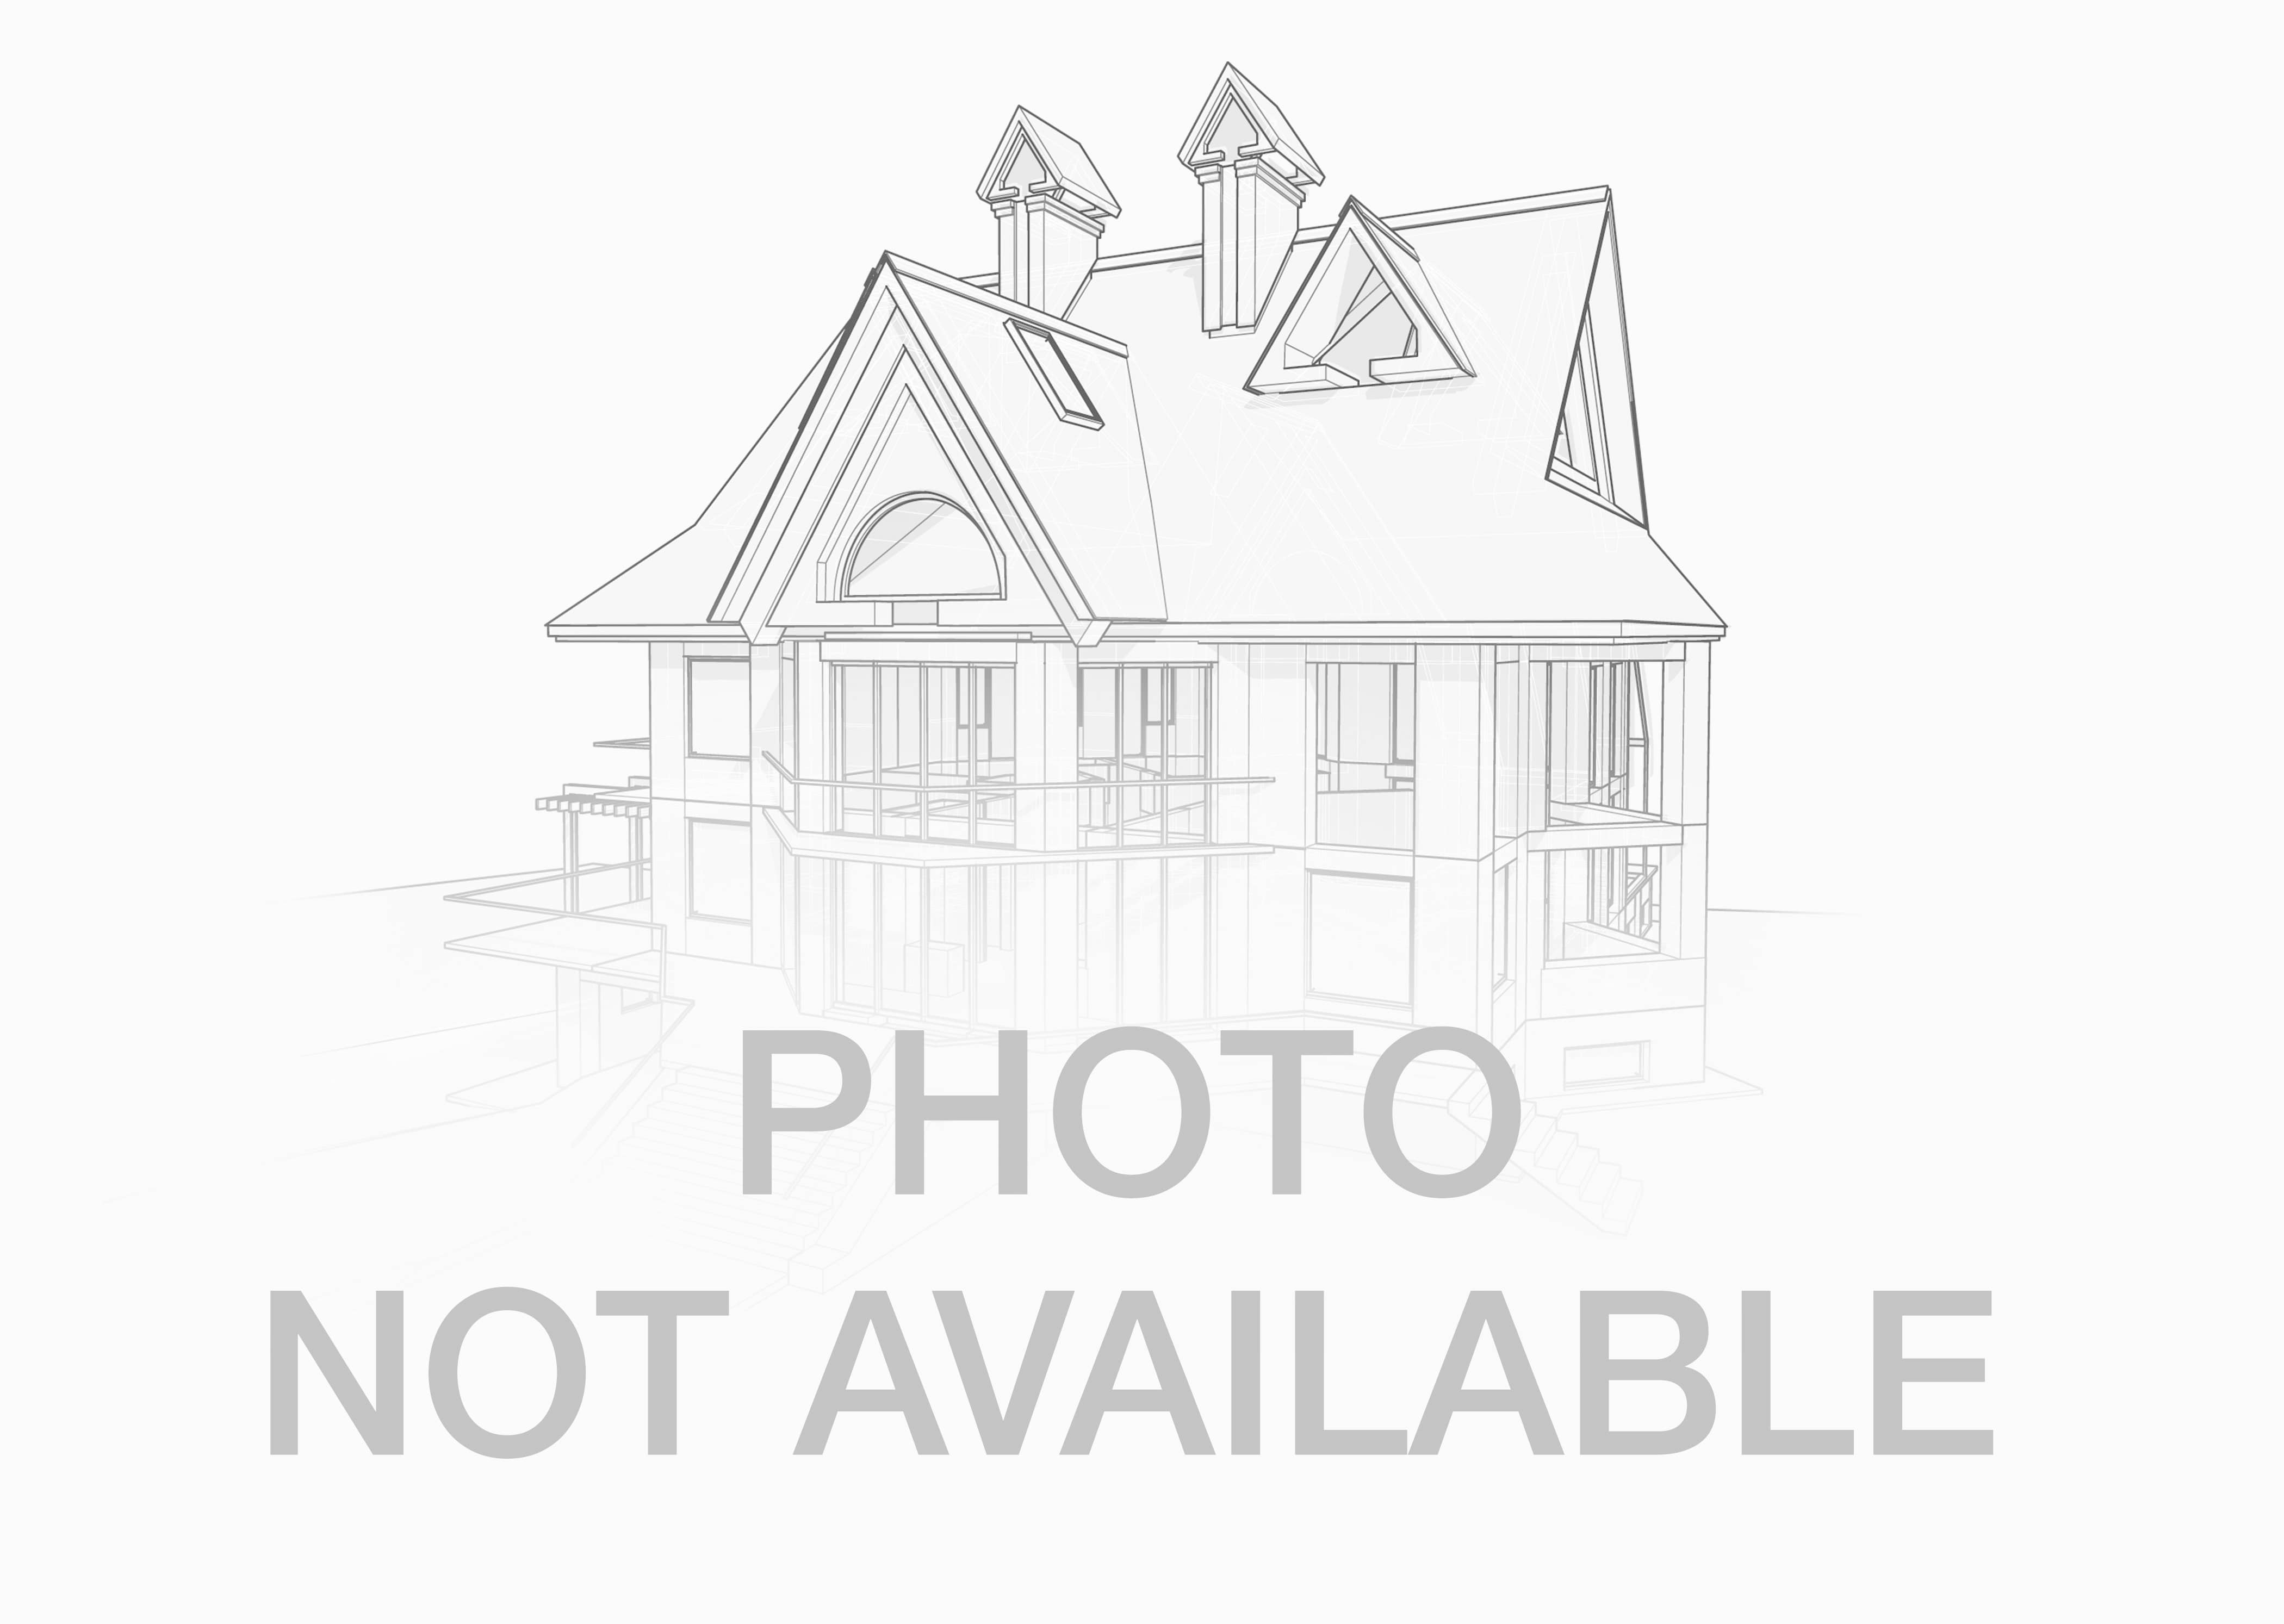 10897 153rd Street, Pike Creek Township, MN 56345- Primary Photograph